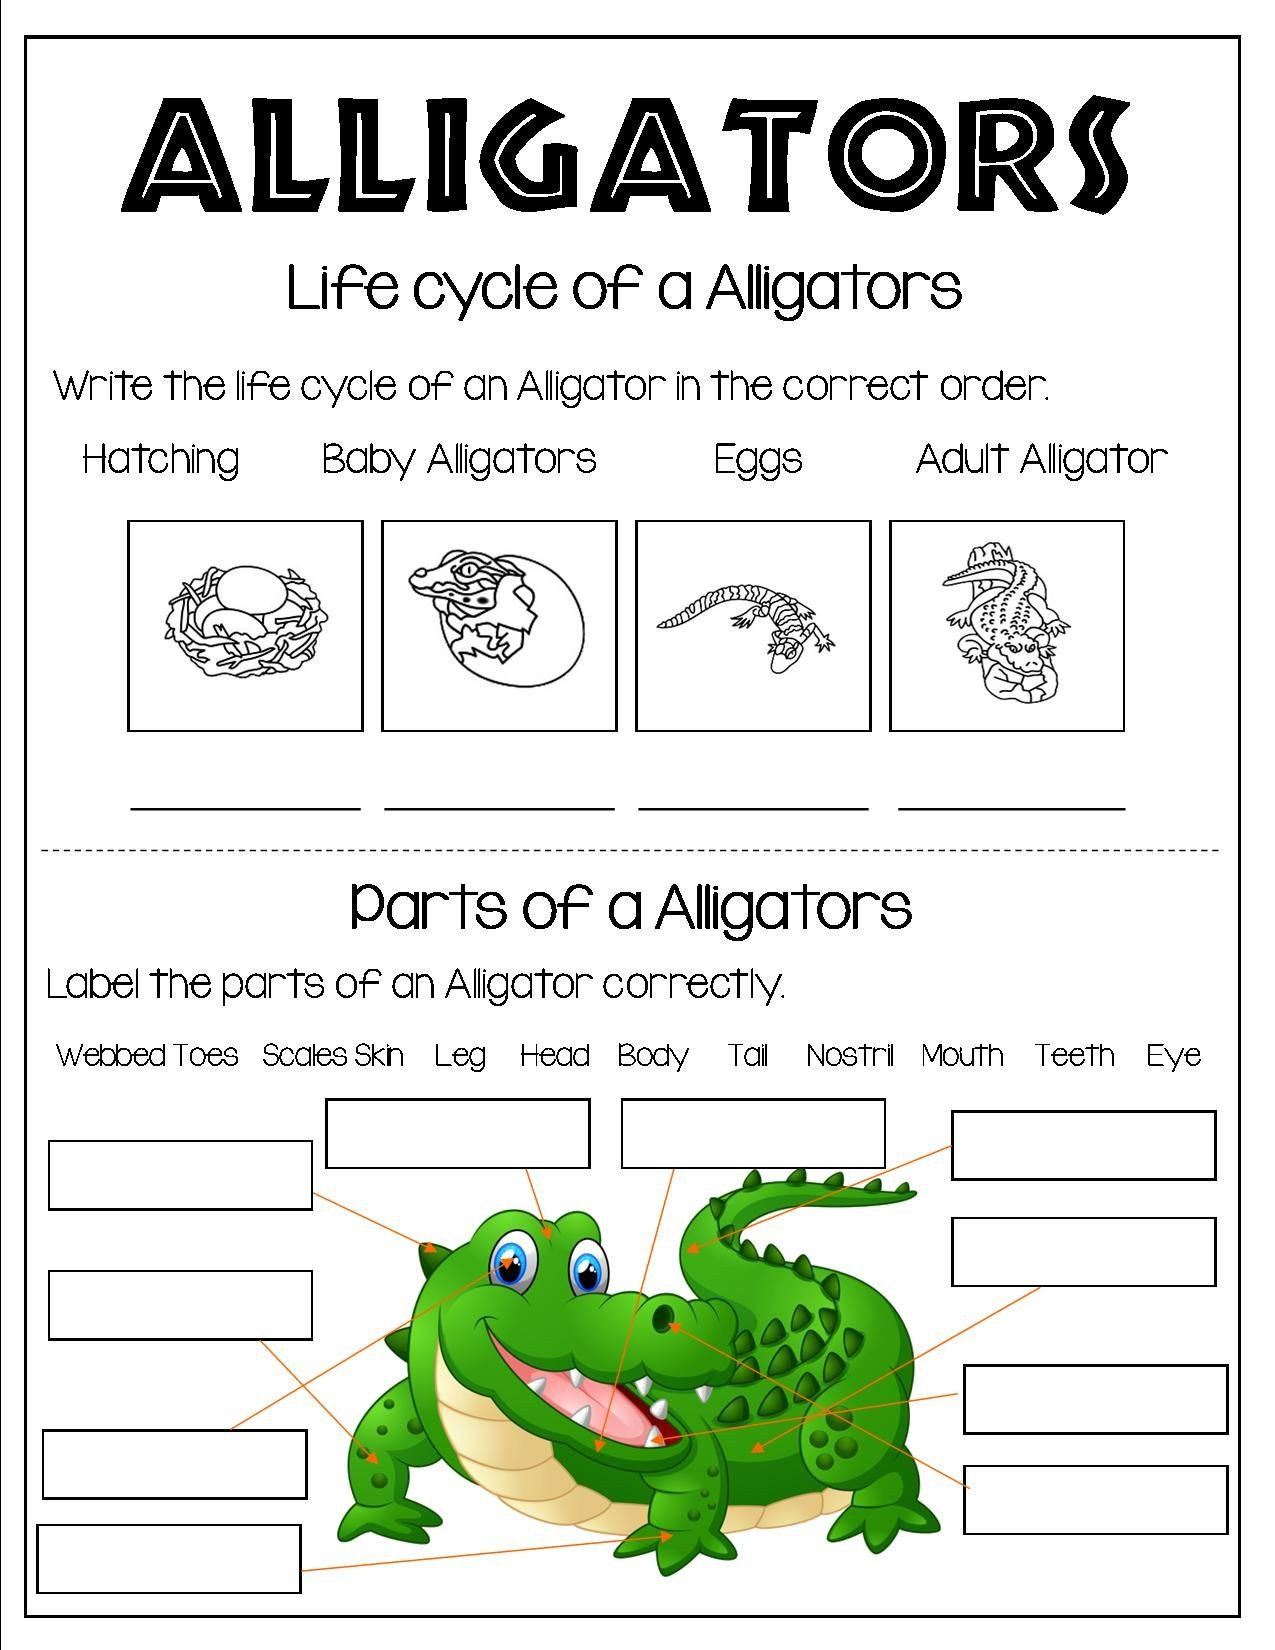 Reptiles Worksheets for Kindergarten Grade 1 and Grade 2 Students Can Learn About Reptiles All